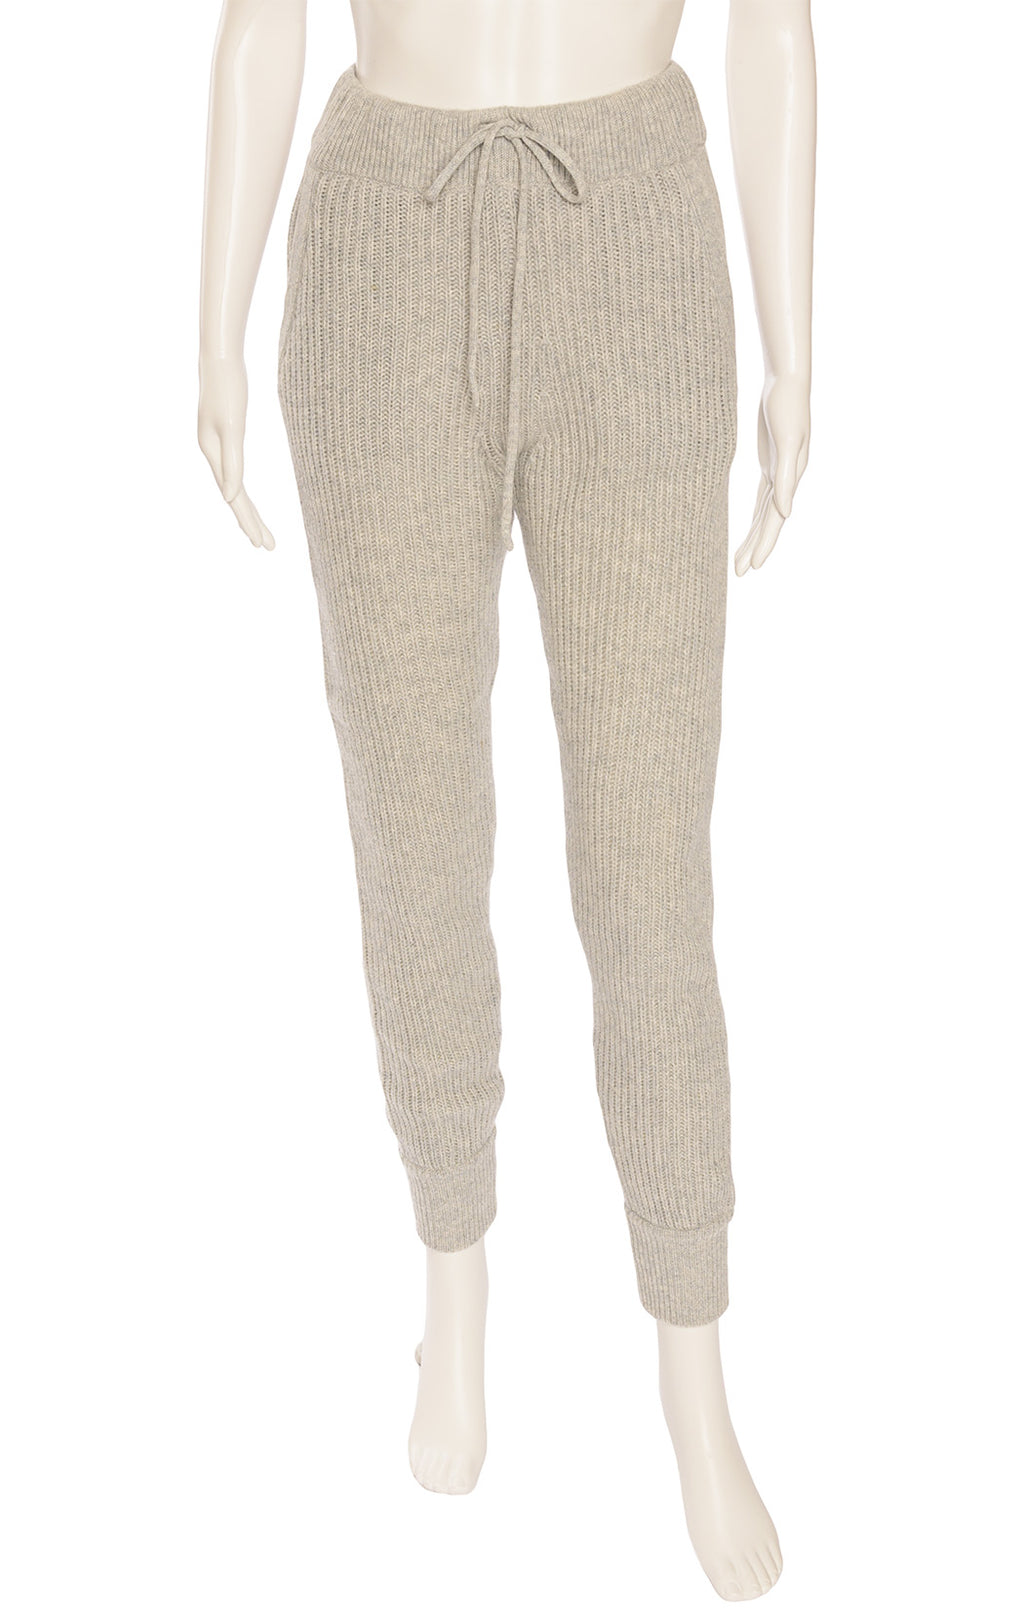 Gray Ribbed knit like sweatpants with drawstring waist and side pockets